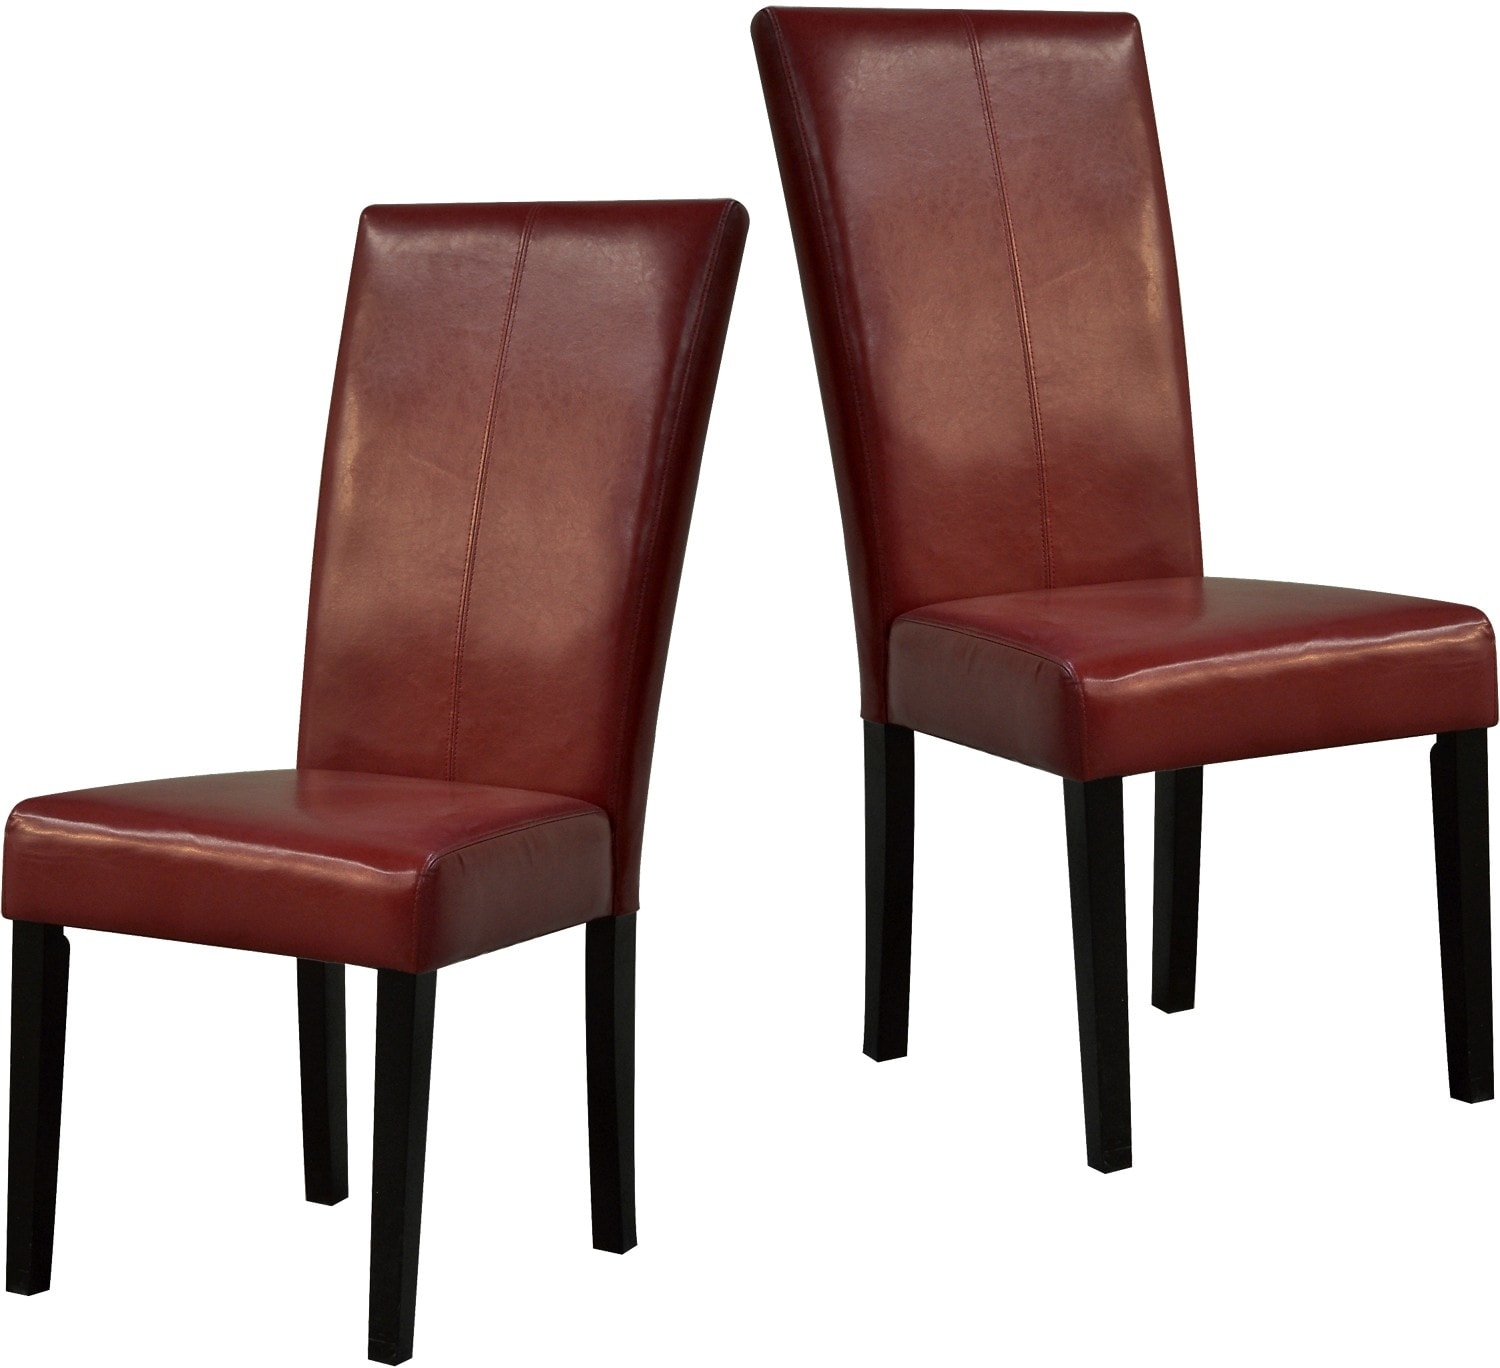 Red Dining Chairs – Package of Two